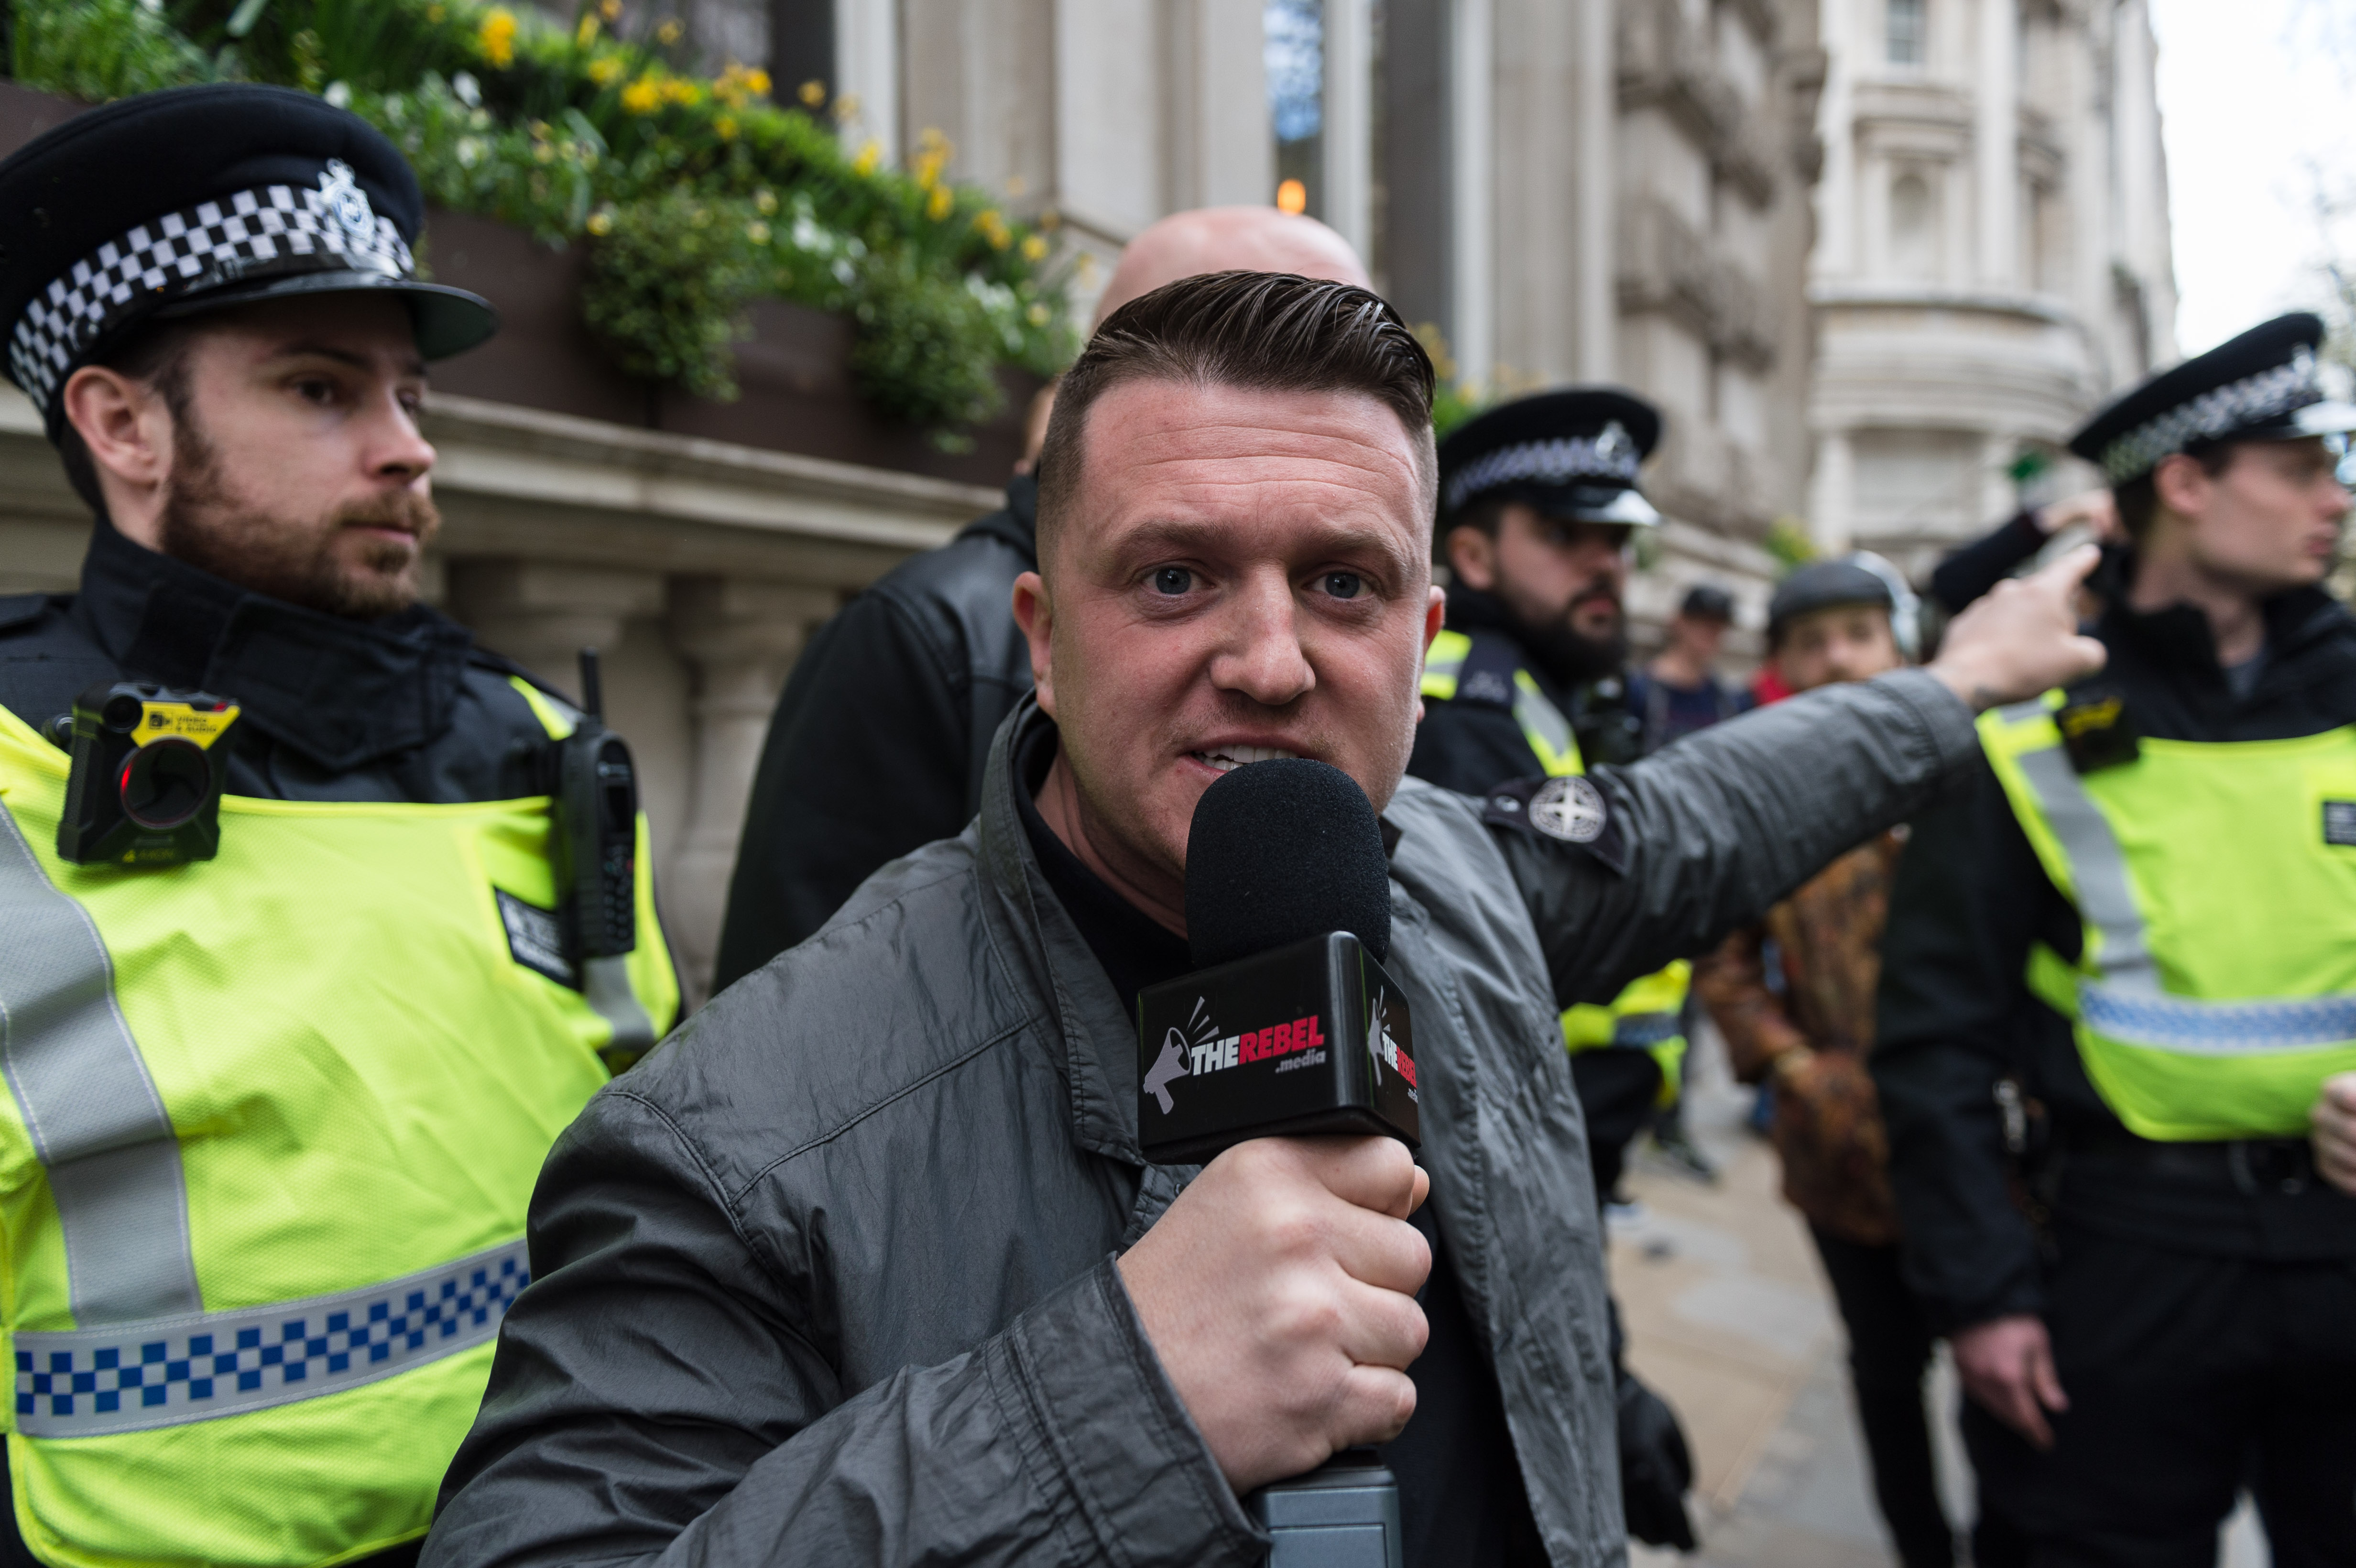 Tommy Robinson, former leader of the English Defence League is escorted by the police as supporters of far-right and anti-Islamic English Defence League (EDL) gather in central London to protest against Islam in the wake of the Westminster terror attack, on April 01, 2017 in London, England.